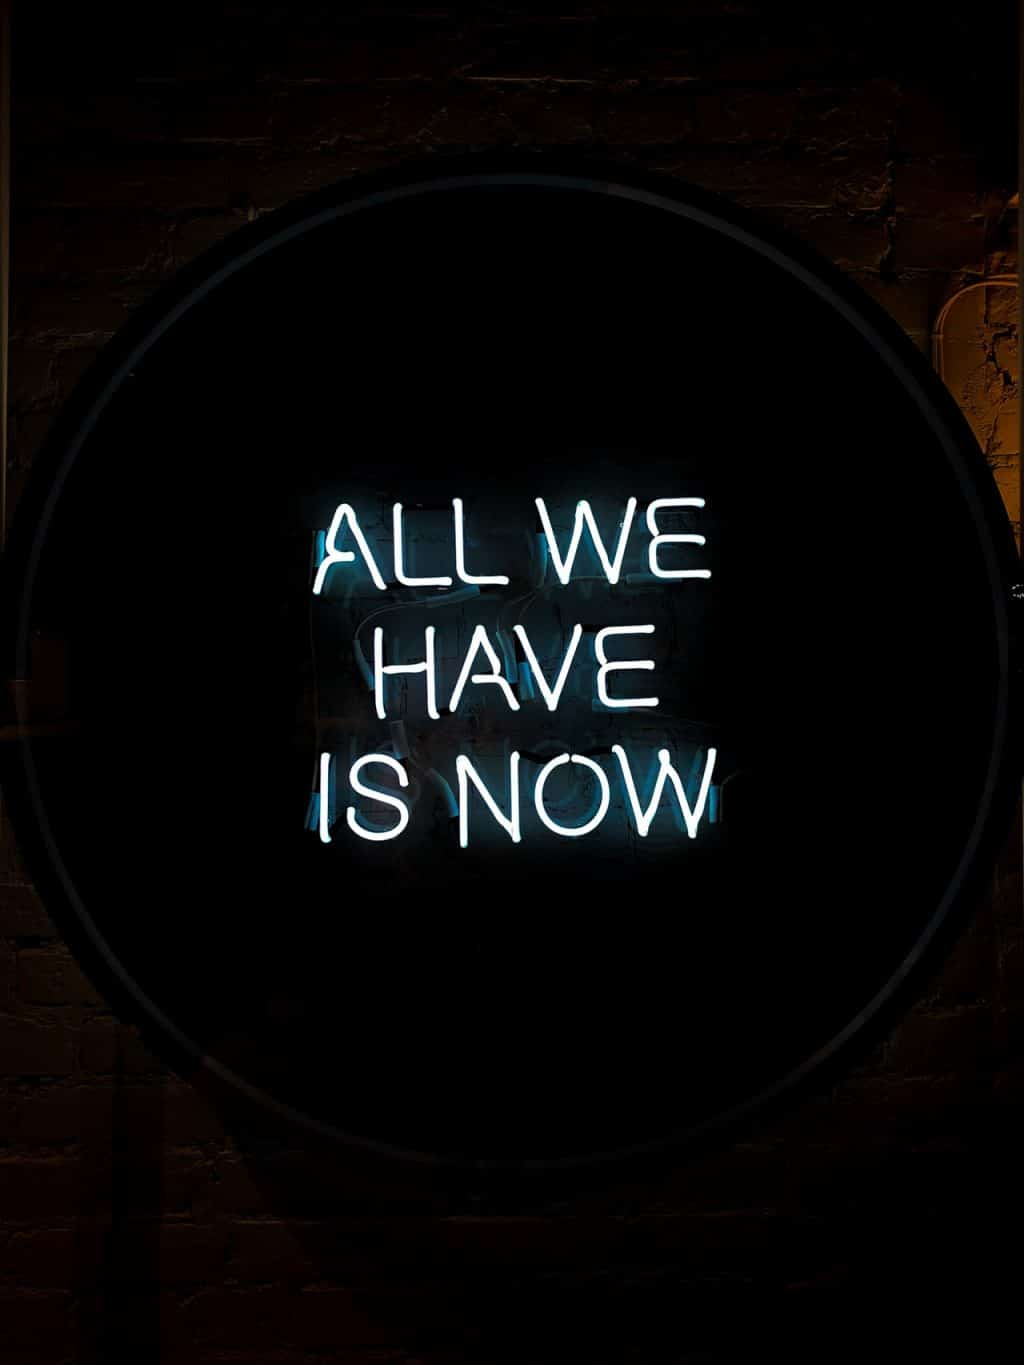 all we have is now quote on black background